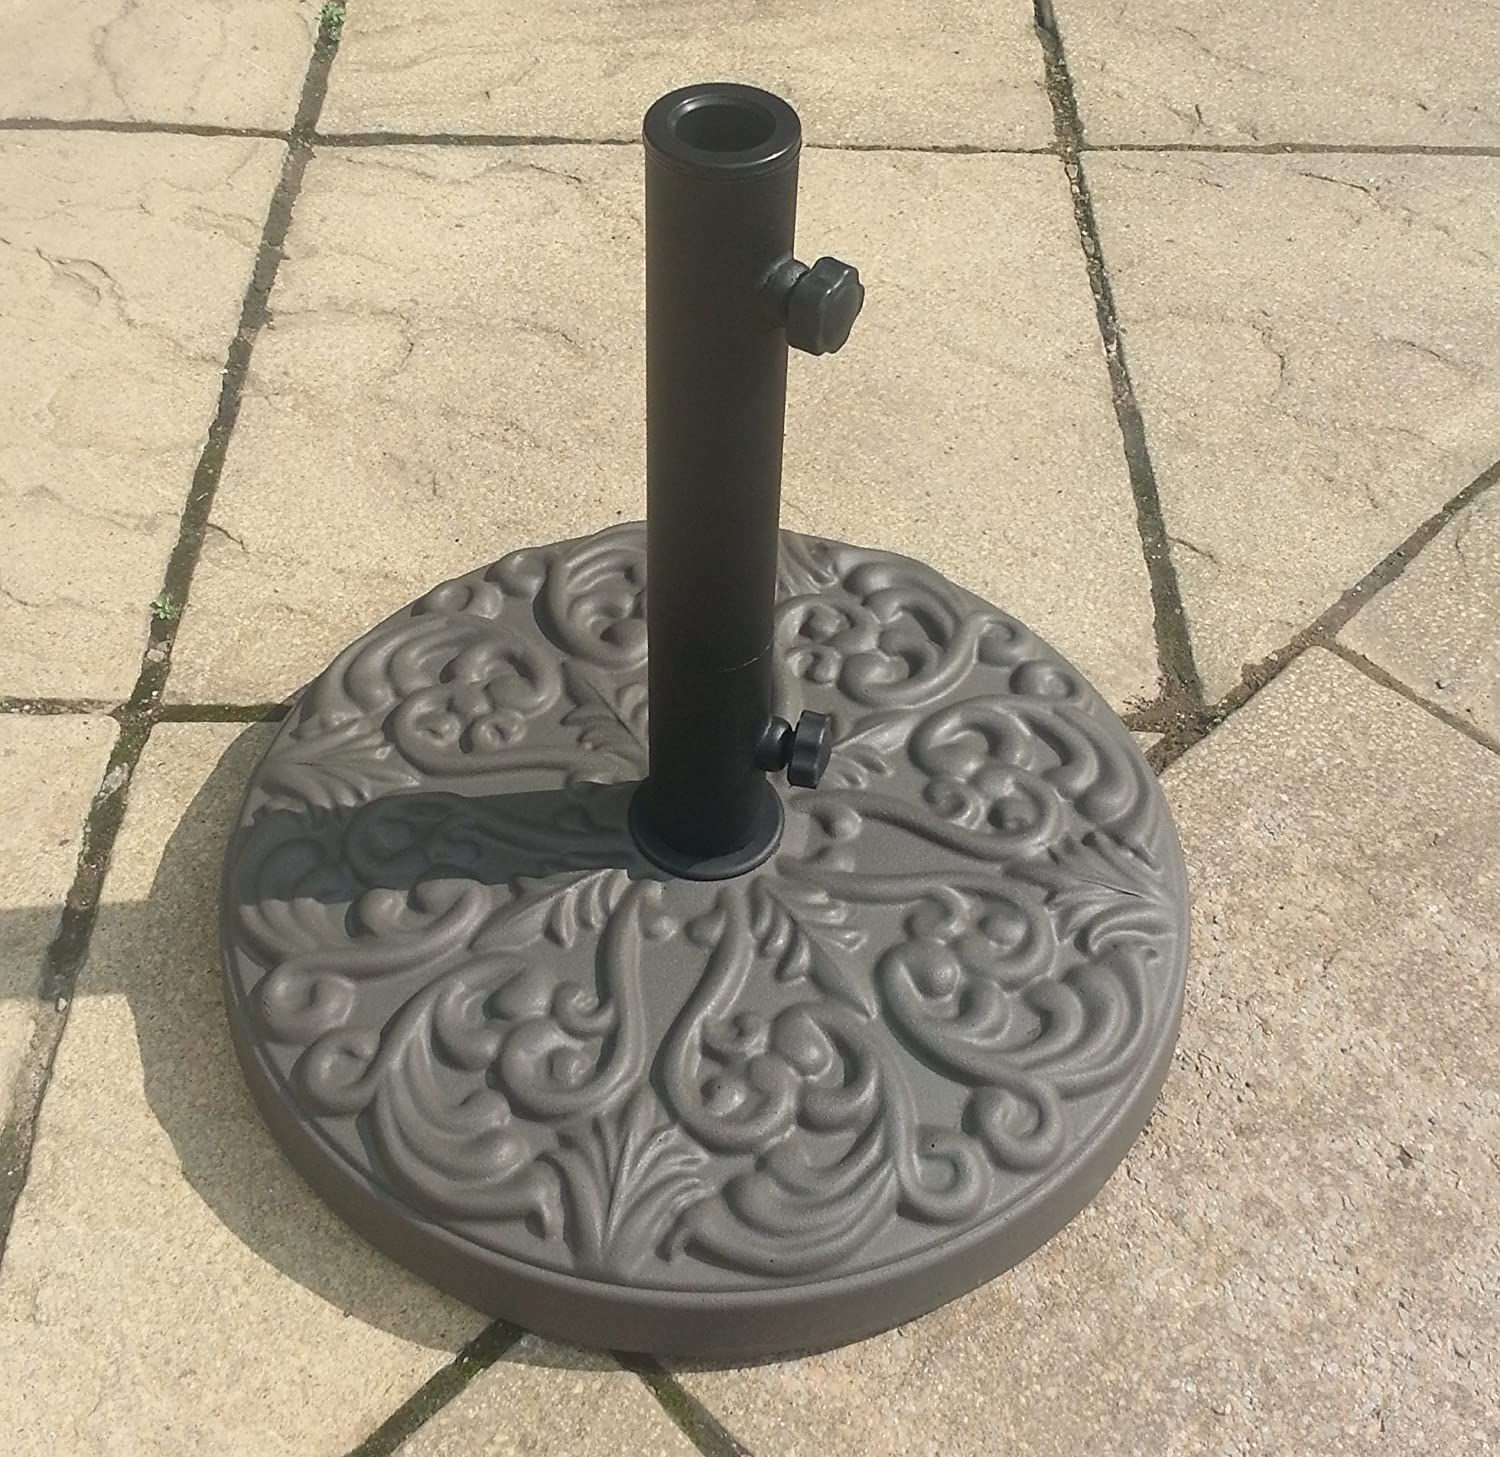 25kg Round Patterned Concrete Parasol Base - Choice of Colours (Bronze) Alfresia